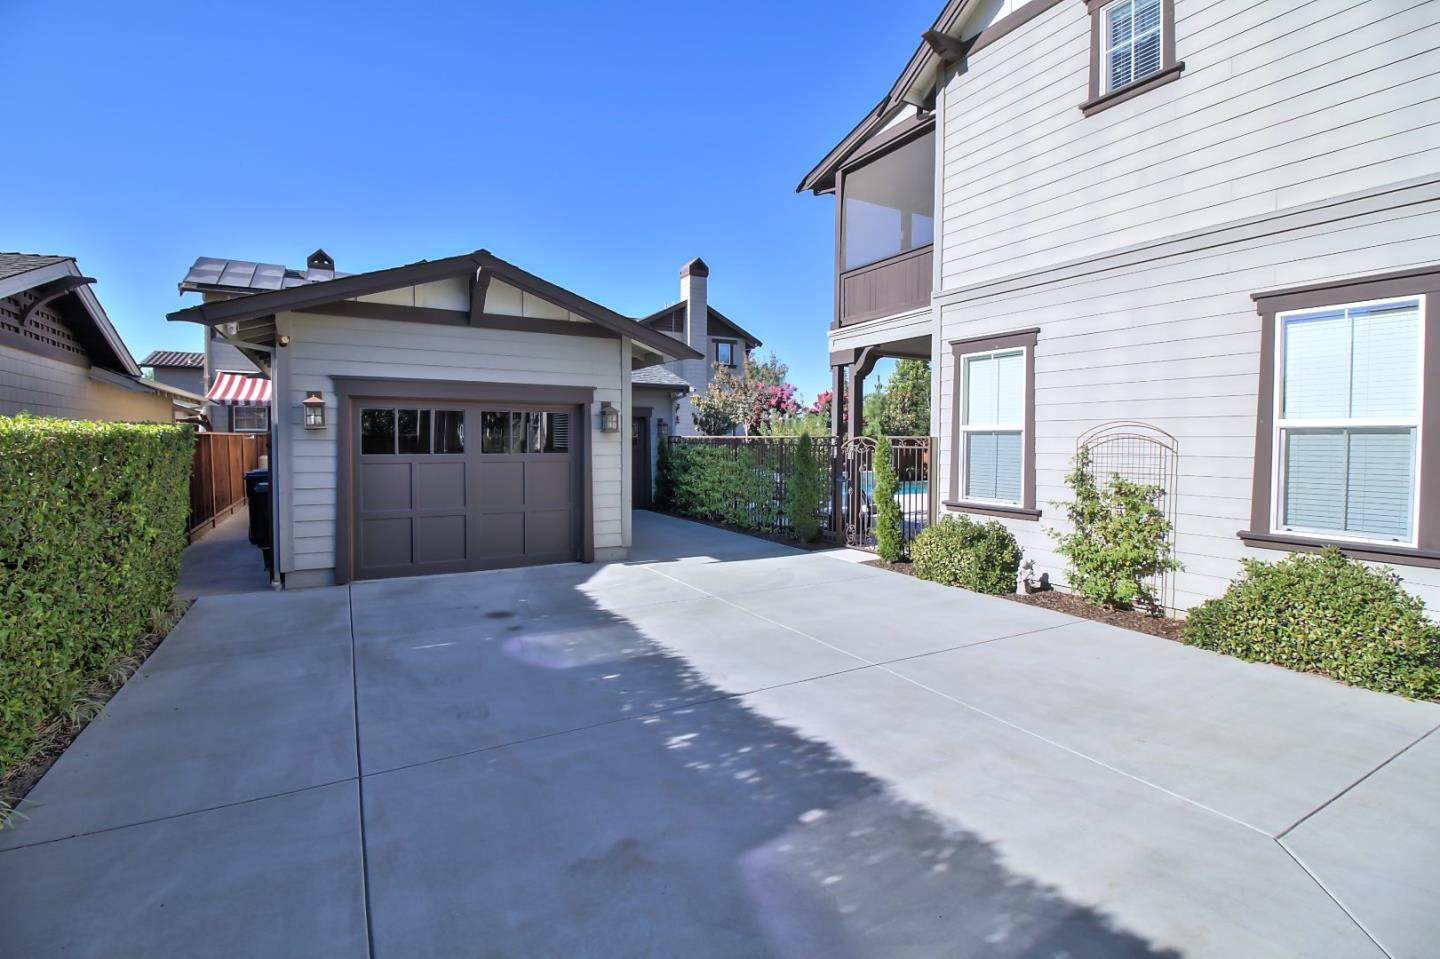 Additional photo for property listing at 5469 Stockton Loop  LIVERMORE, CALIFORNIA 94550